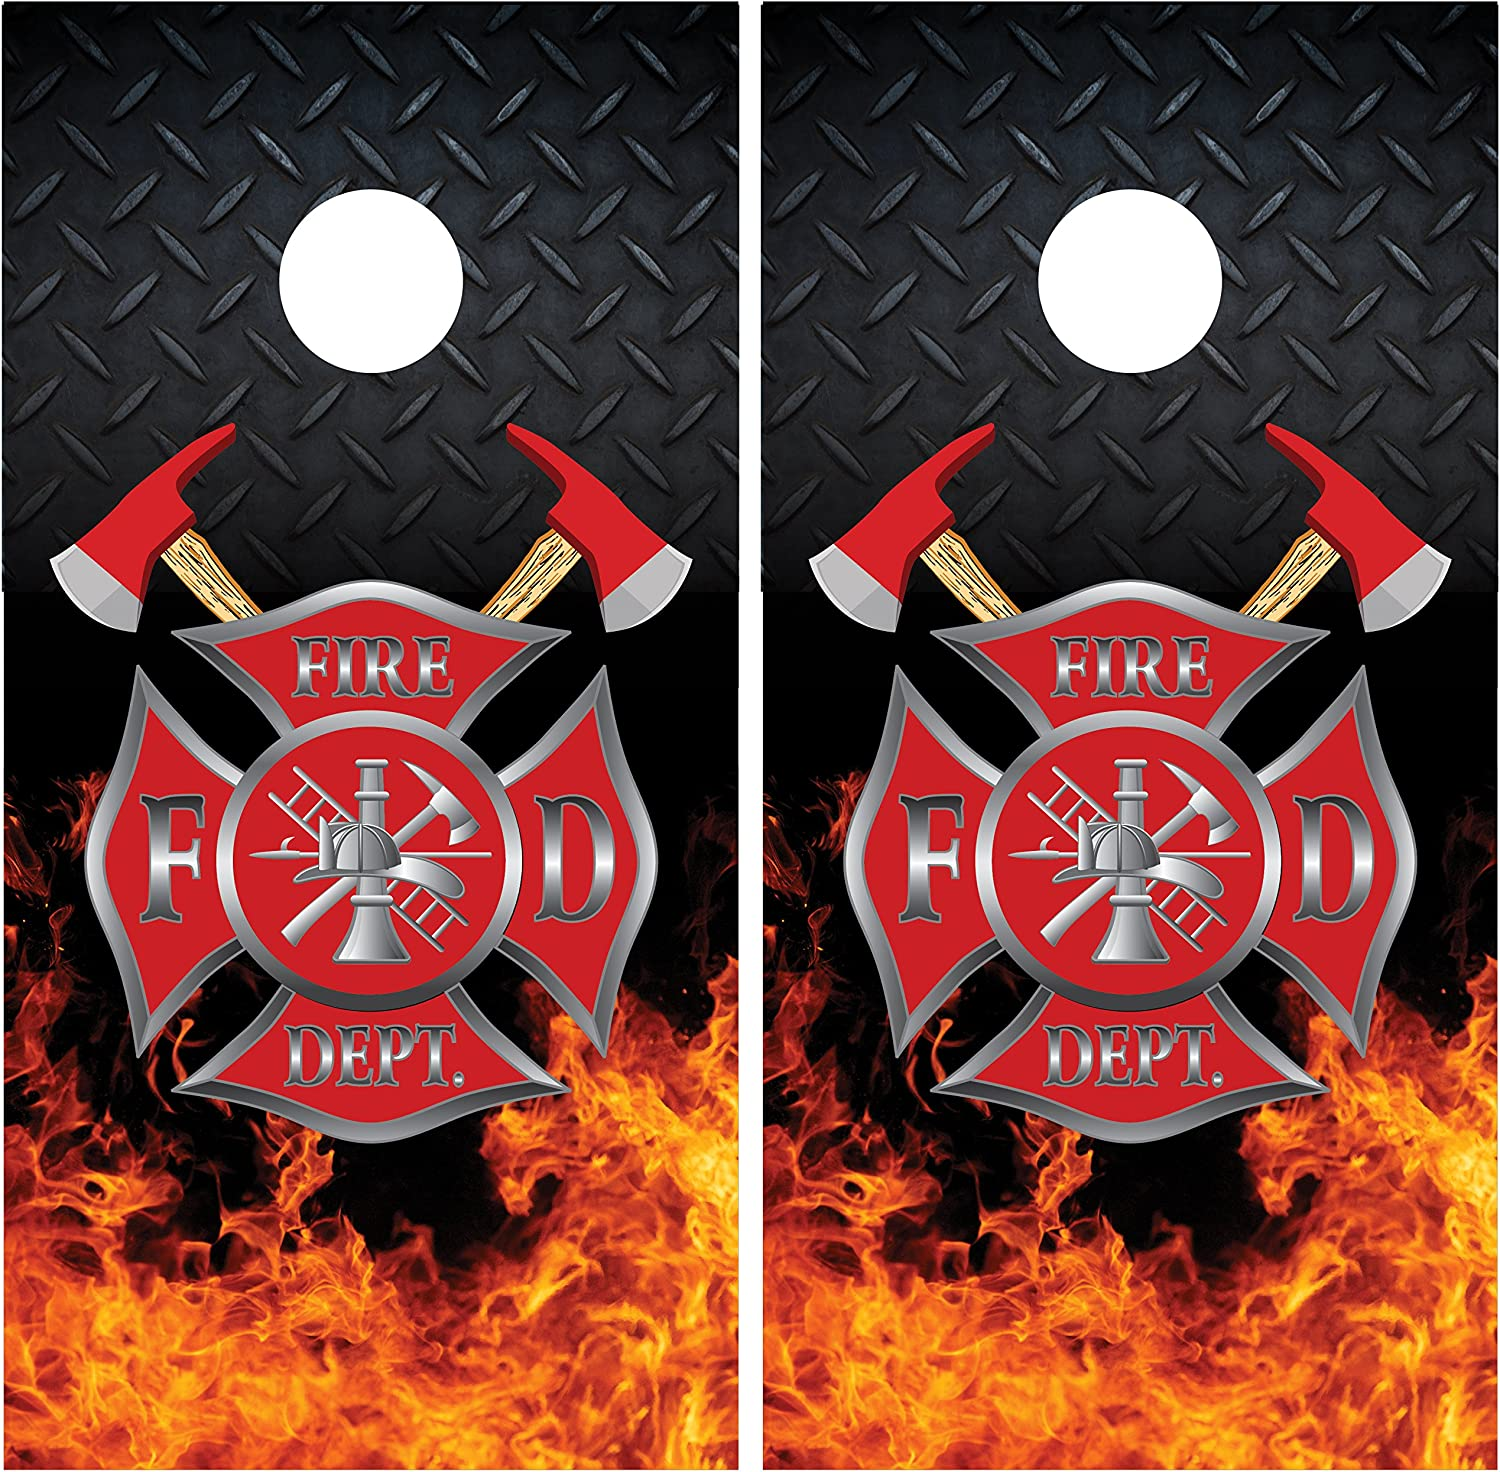 Miller Graphics Firefighter Industry No. 1 Emblem Diamond Flames Plate Lam Fire Max 71% OFF